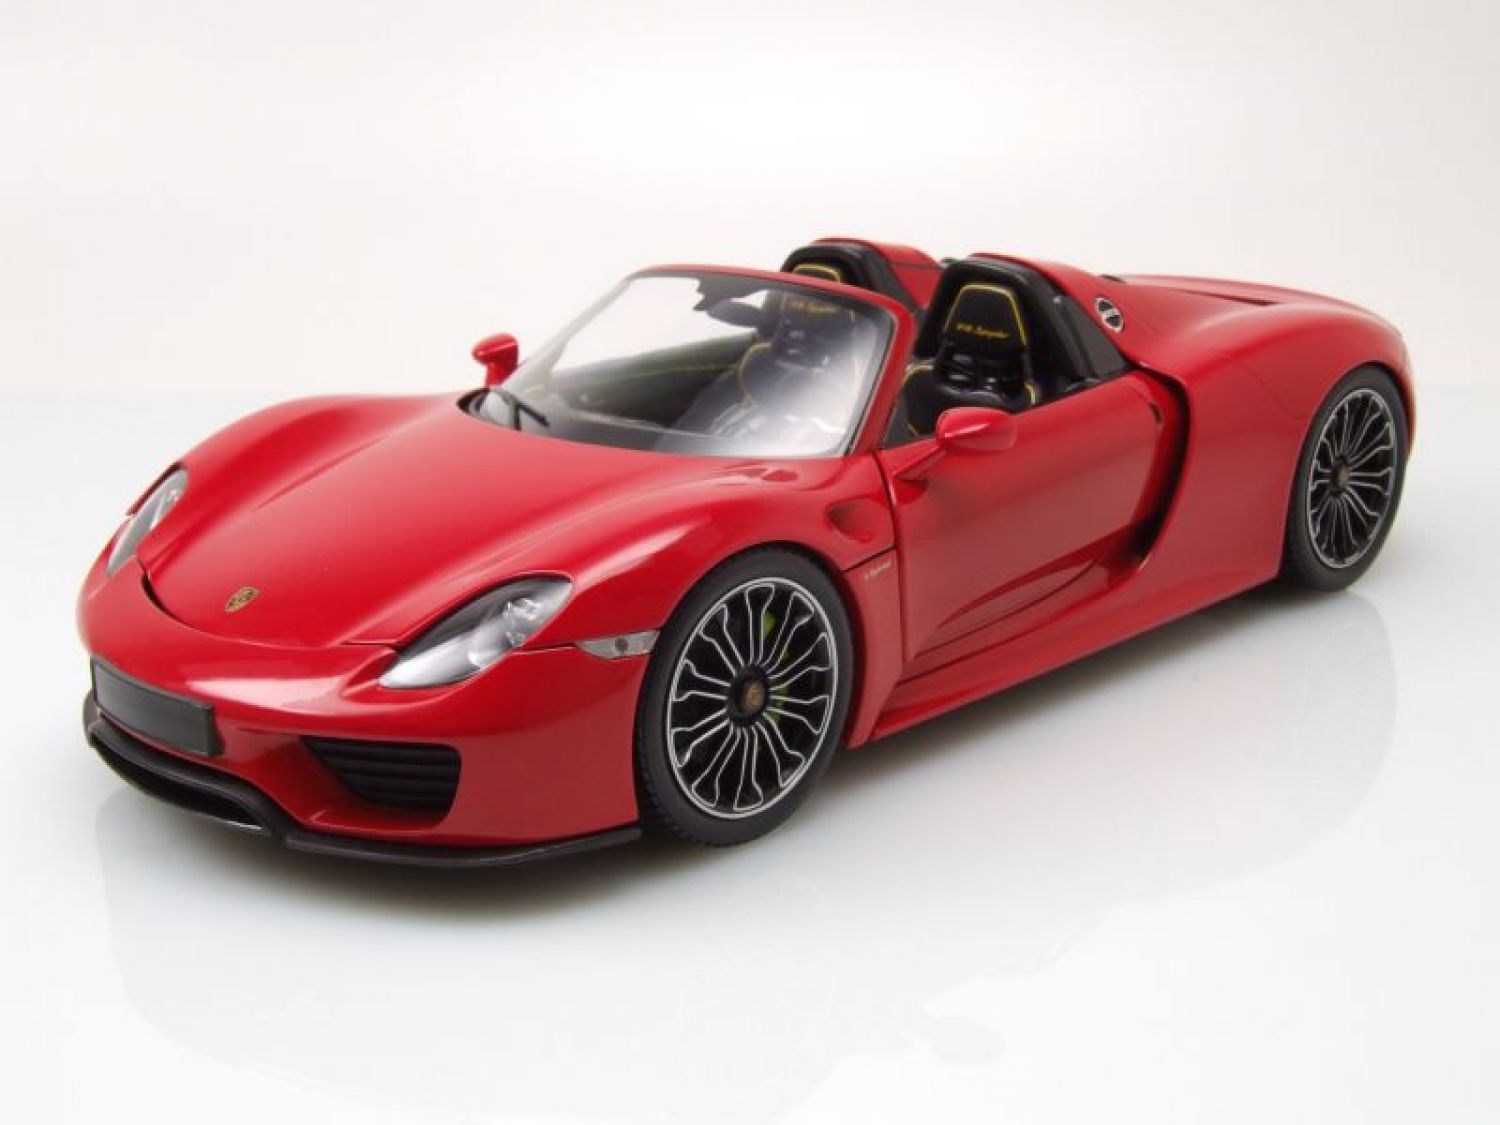 porsche 918 spyder 2013 rot modellauto 1 18 minichamps. Black Bedroom Furniture Sets. Home Design Ideas